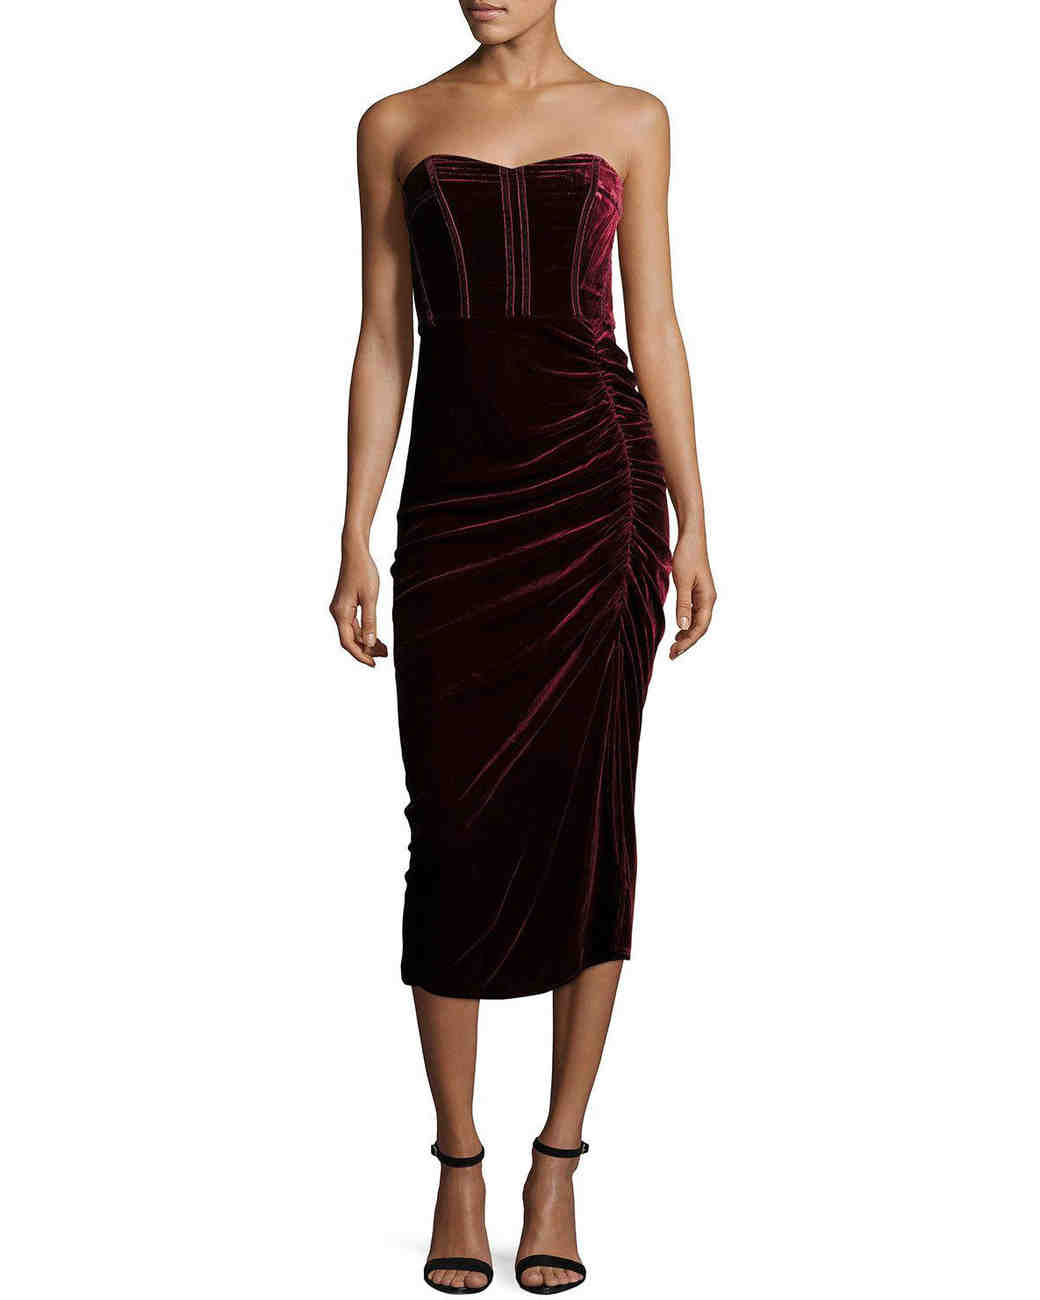 Strapless Funeral Dresses